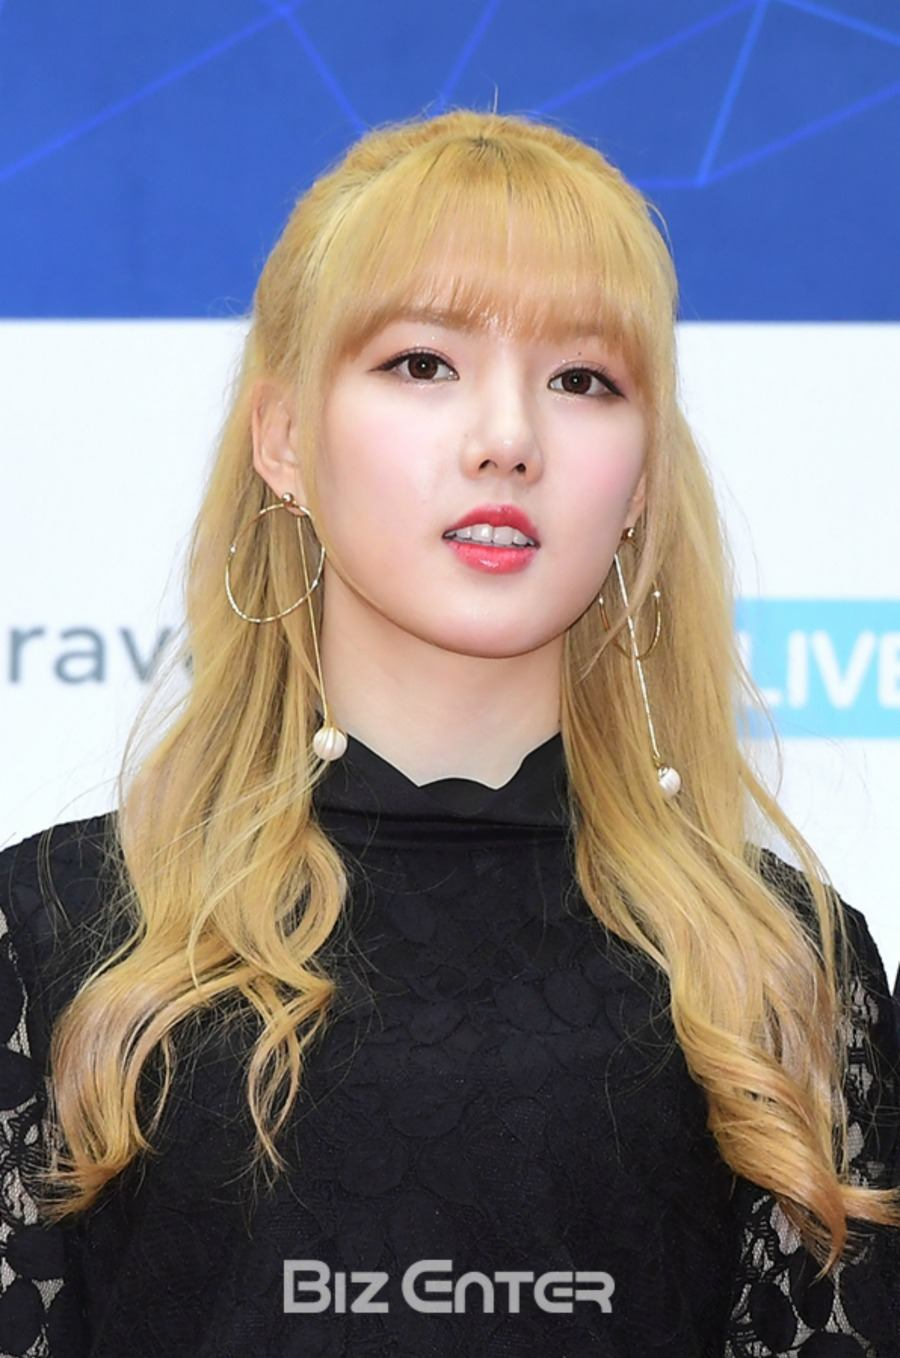 Light Reddish Blonde Hair GFRIEND Finally Reveal...